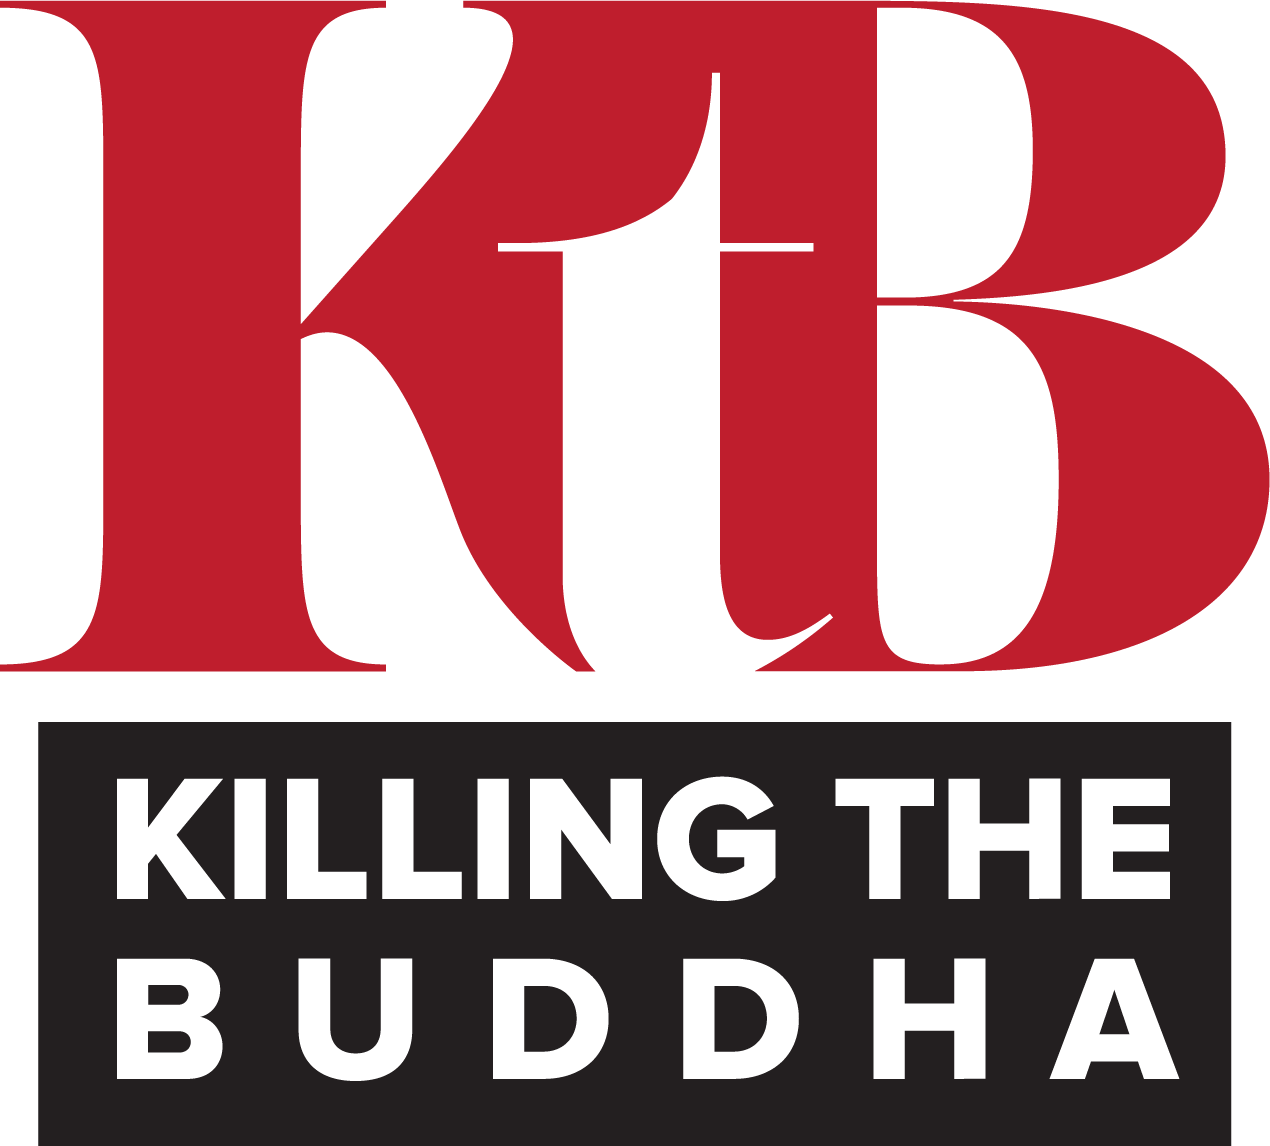 https://www.sumydesigns.com/wp-content/webpc-passthru.php?src=https://www.sumydesigns.com/wp-content/uploads/2020/11/Killing-the-Buddha@3x-8.png&nocache=1